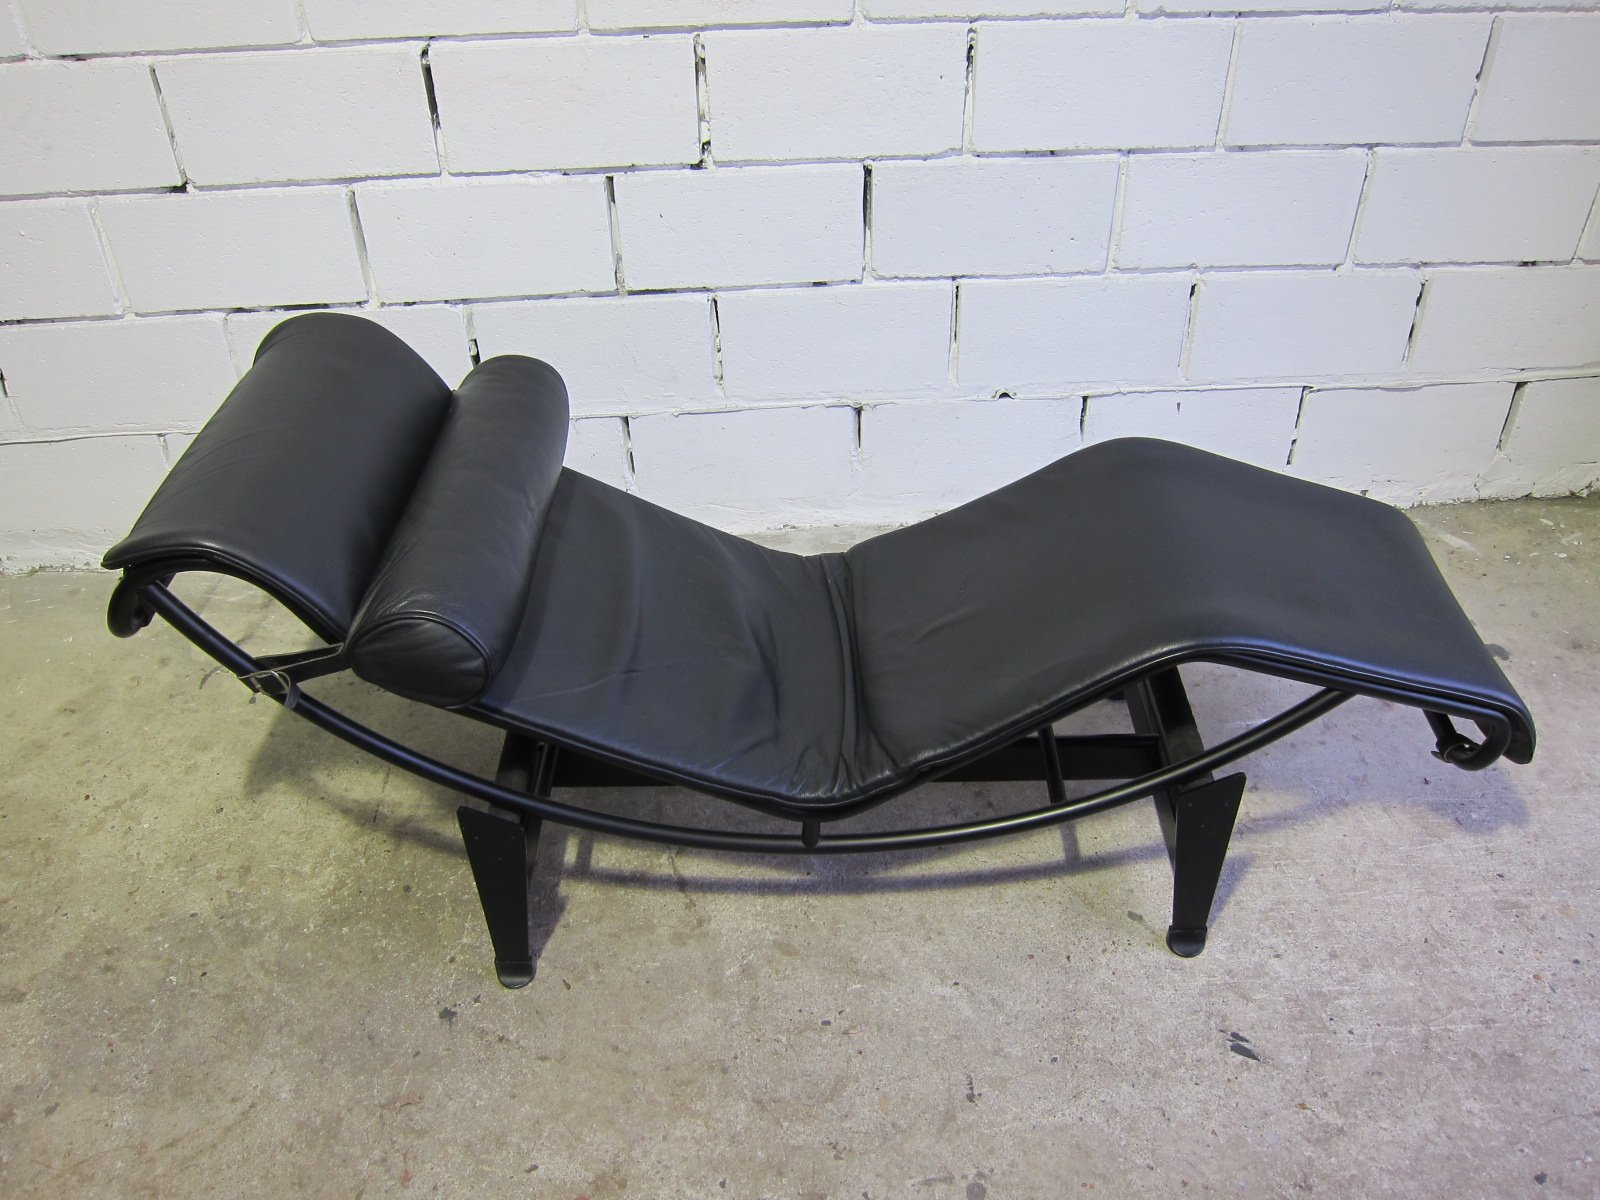 Vintage lc4 chaise lounge by le corbusier for cassina for Chaise lounge corbusier